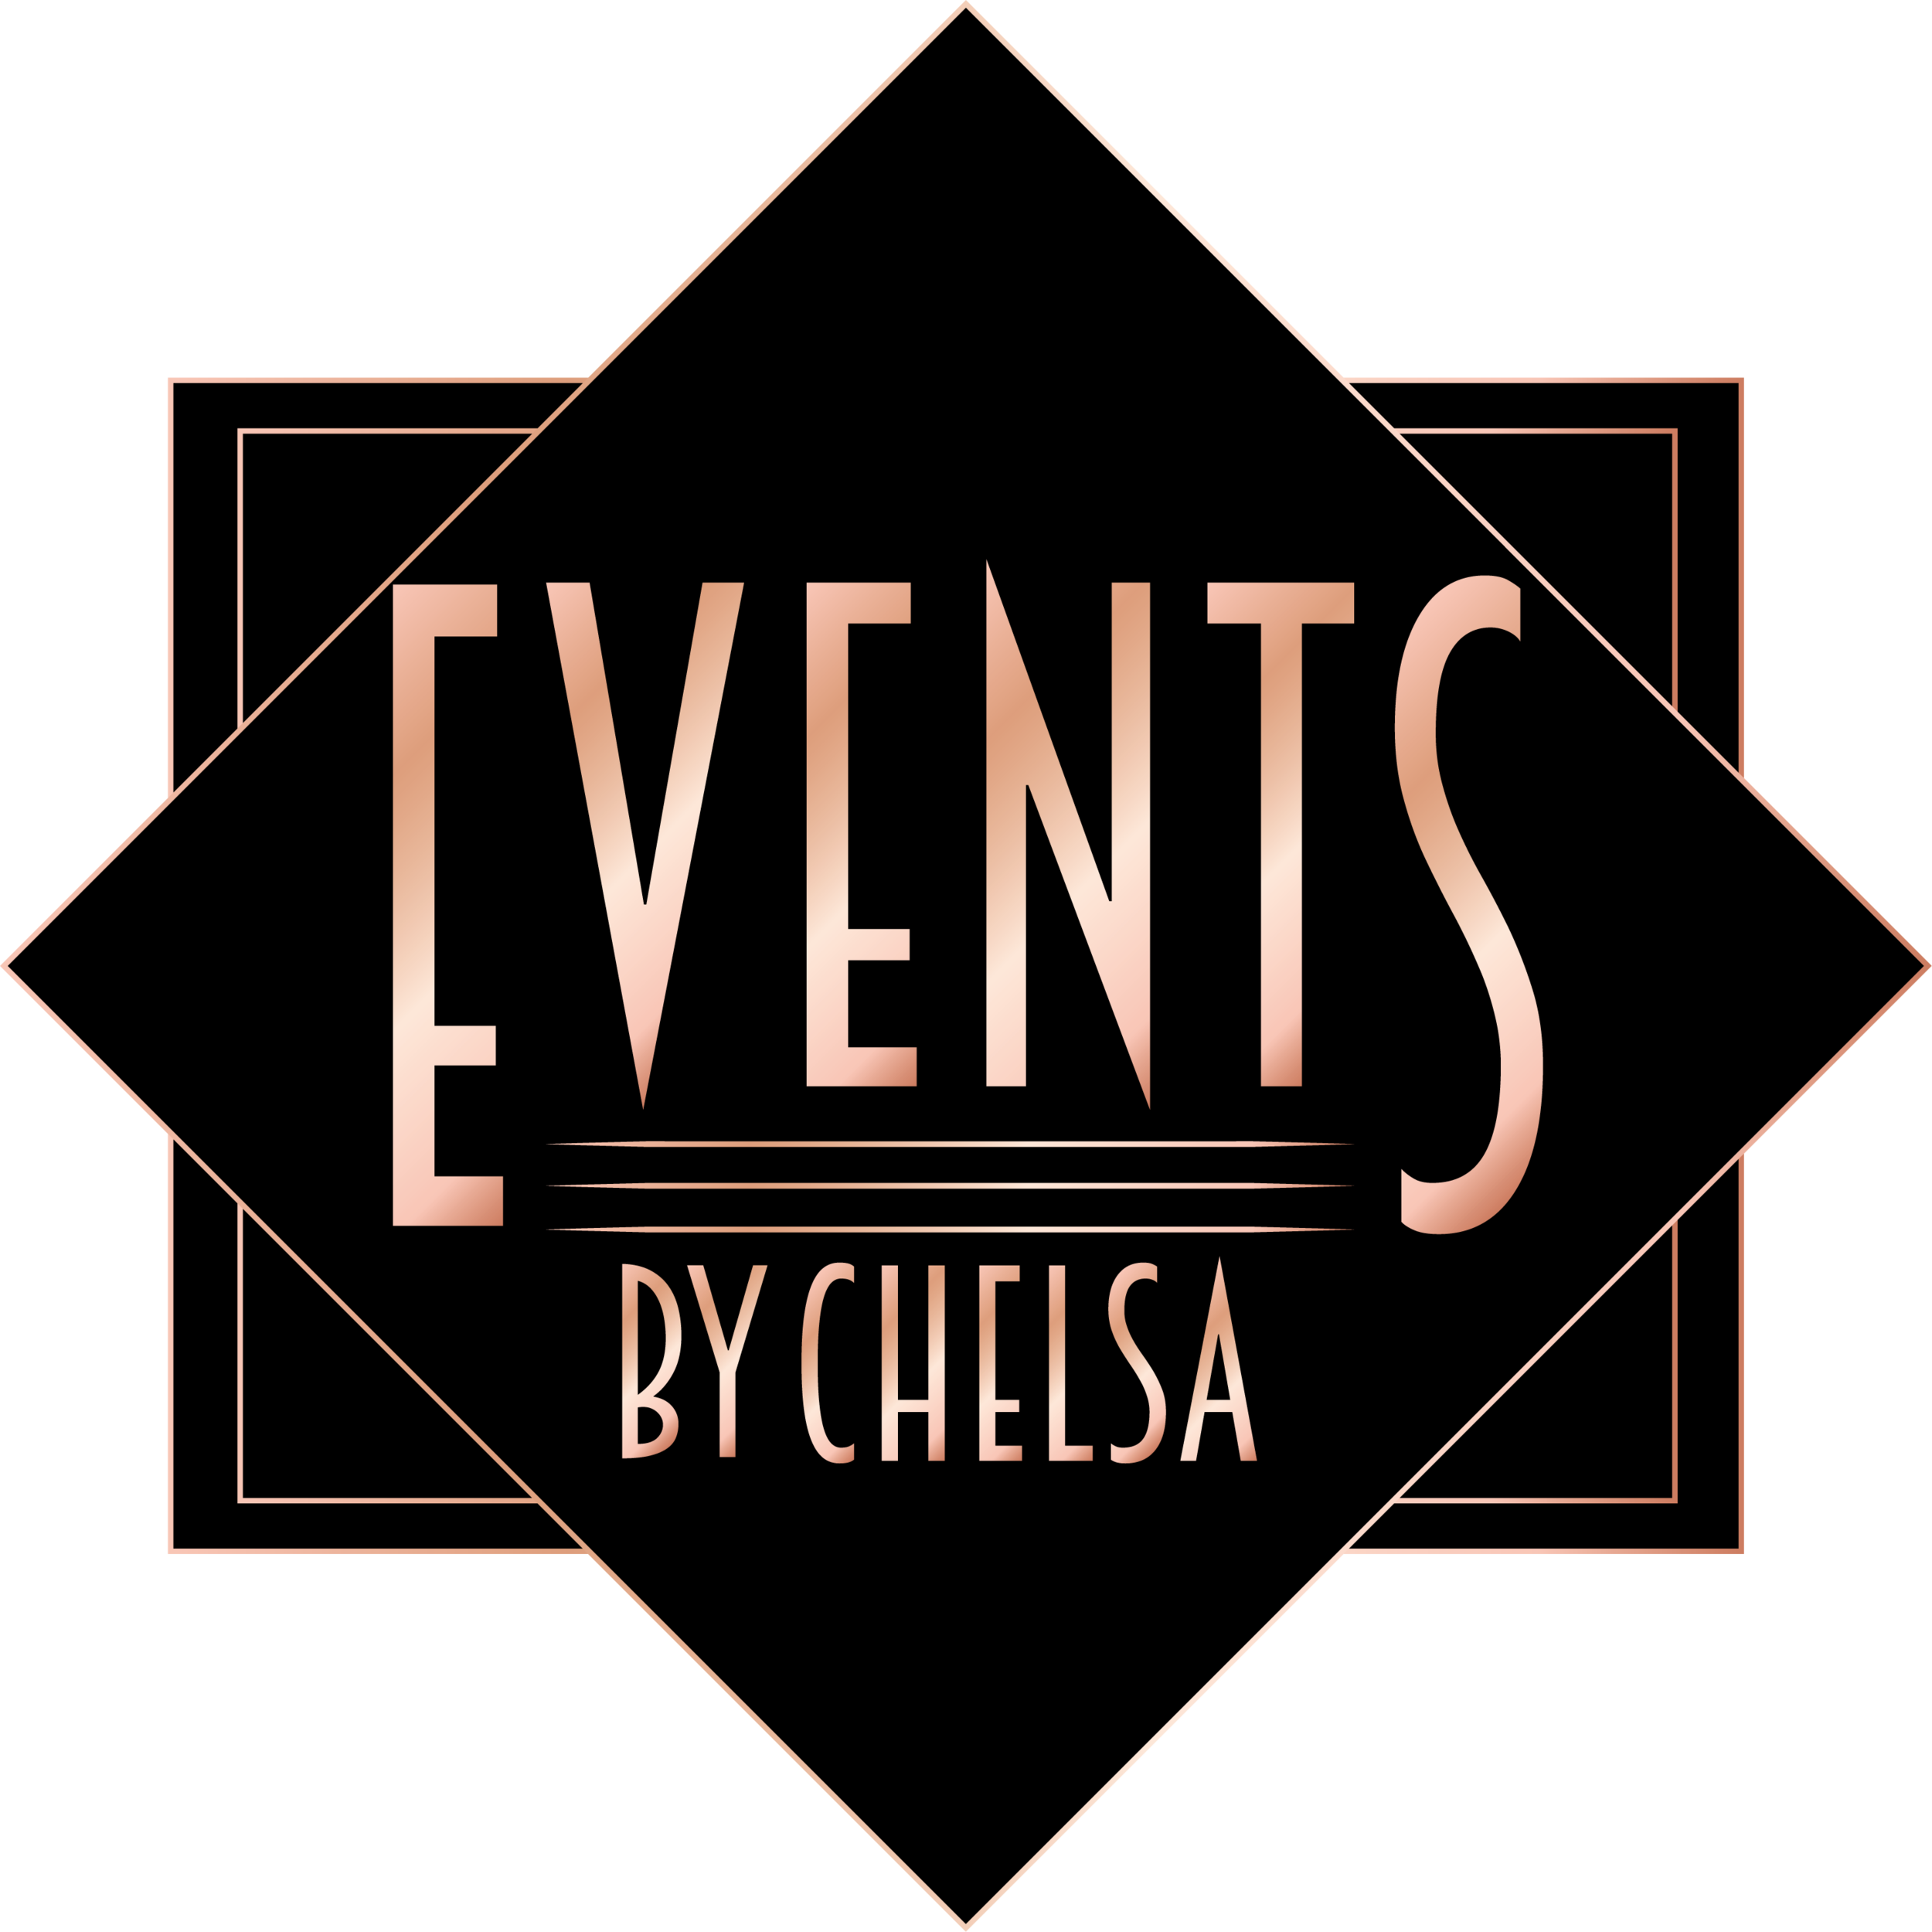 Events by Chelsa Logo.png